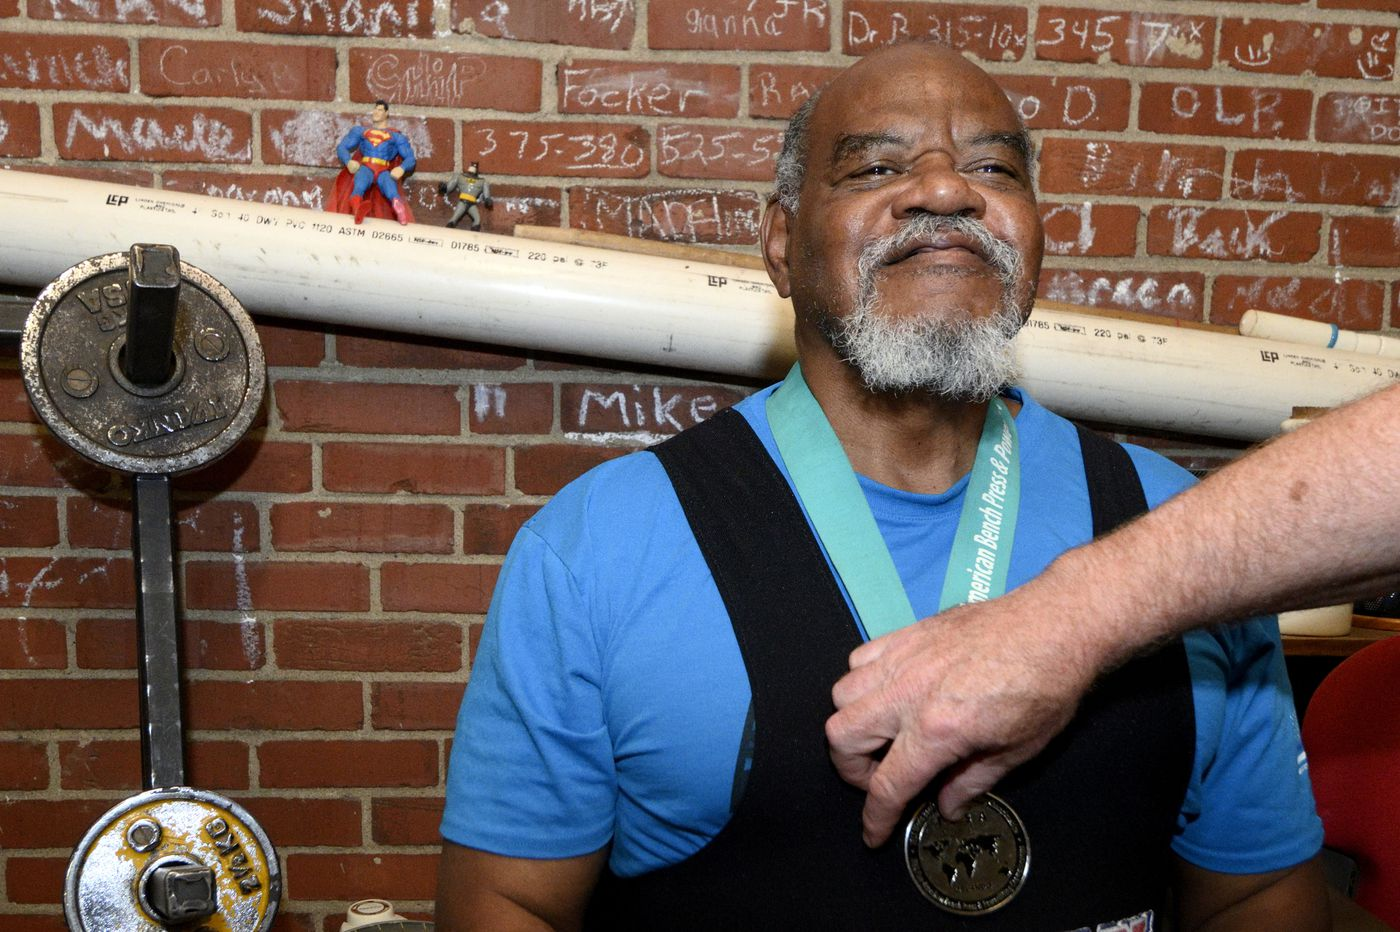 Philly powerlifter, 69, overcame blindness, homelessness, addiction, cancer, and the death of his daughter to become a champion